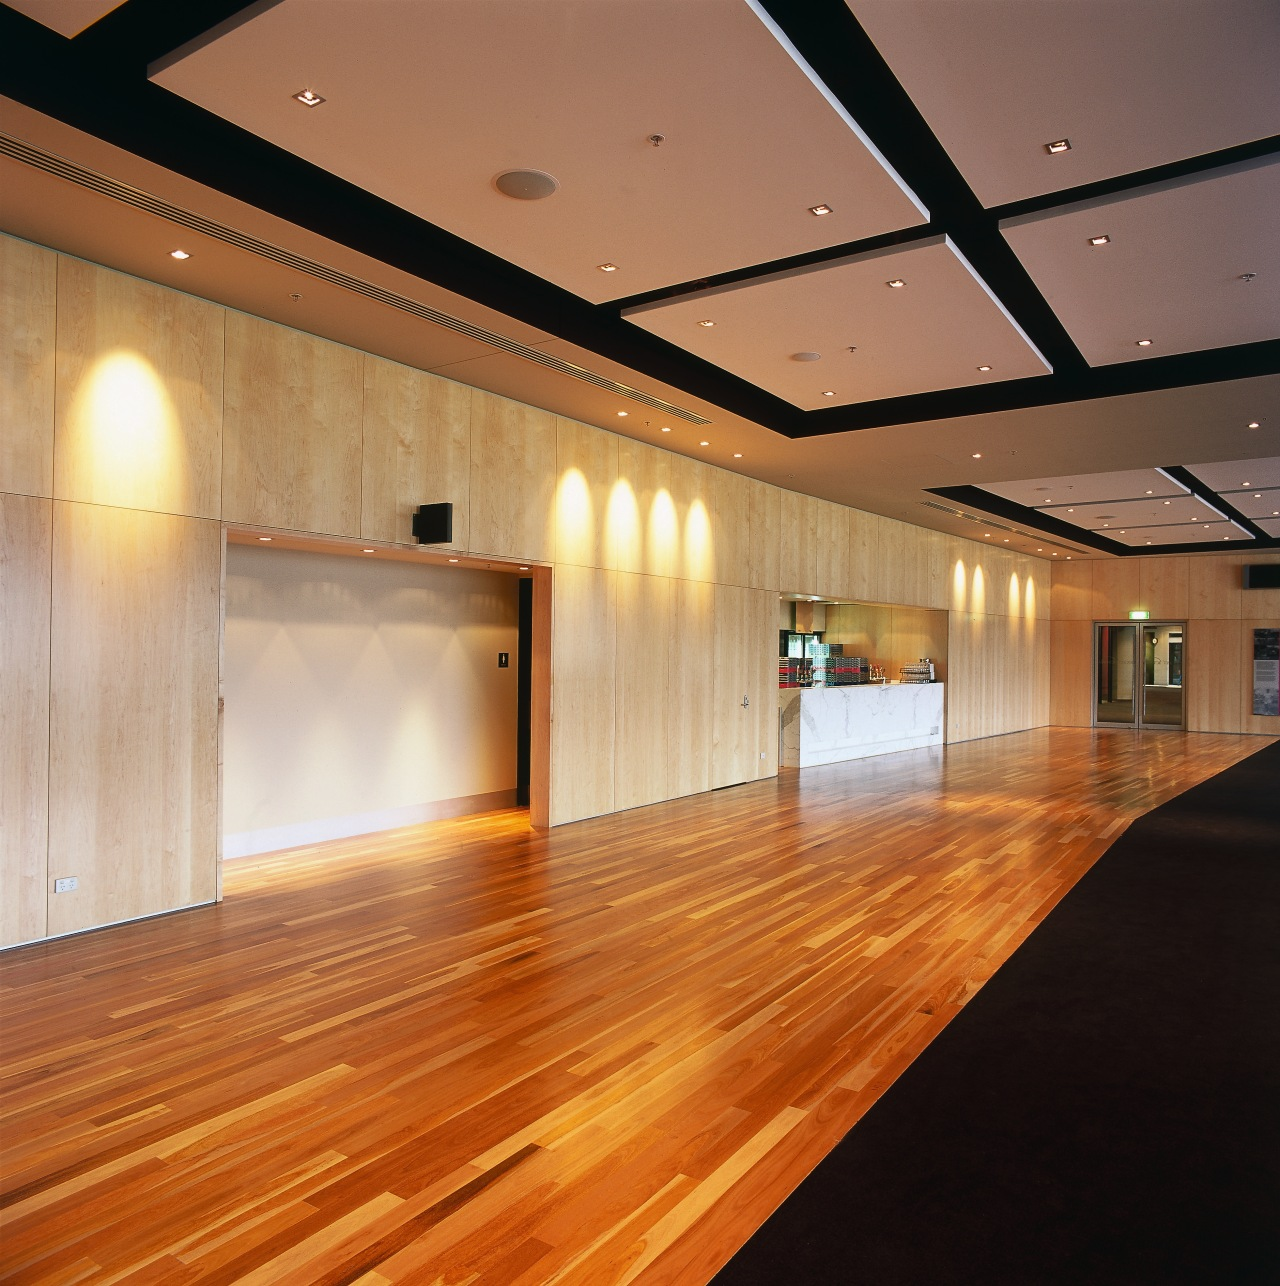 Large function room with maple walll panelling and architecture, ceiling, daylighting, floor, flooring, function hall, hardwood, interior design, laminate flooring, light, lighting, lobby, wood, wood flooring, brown, orange